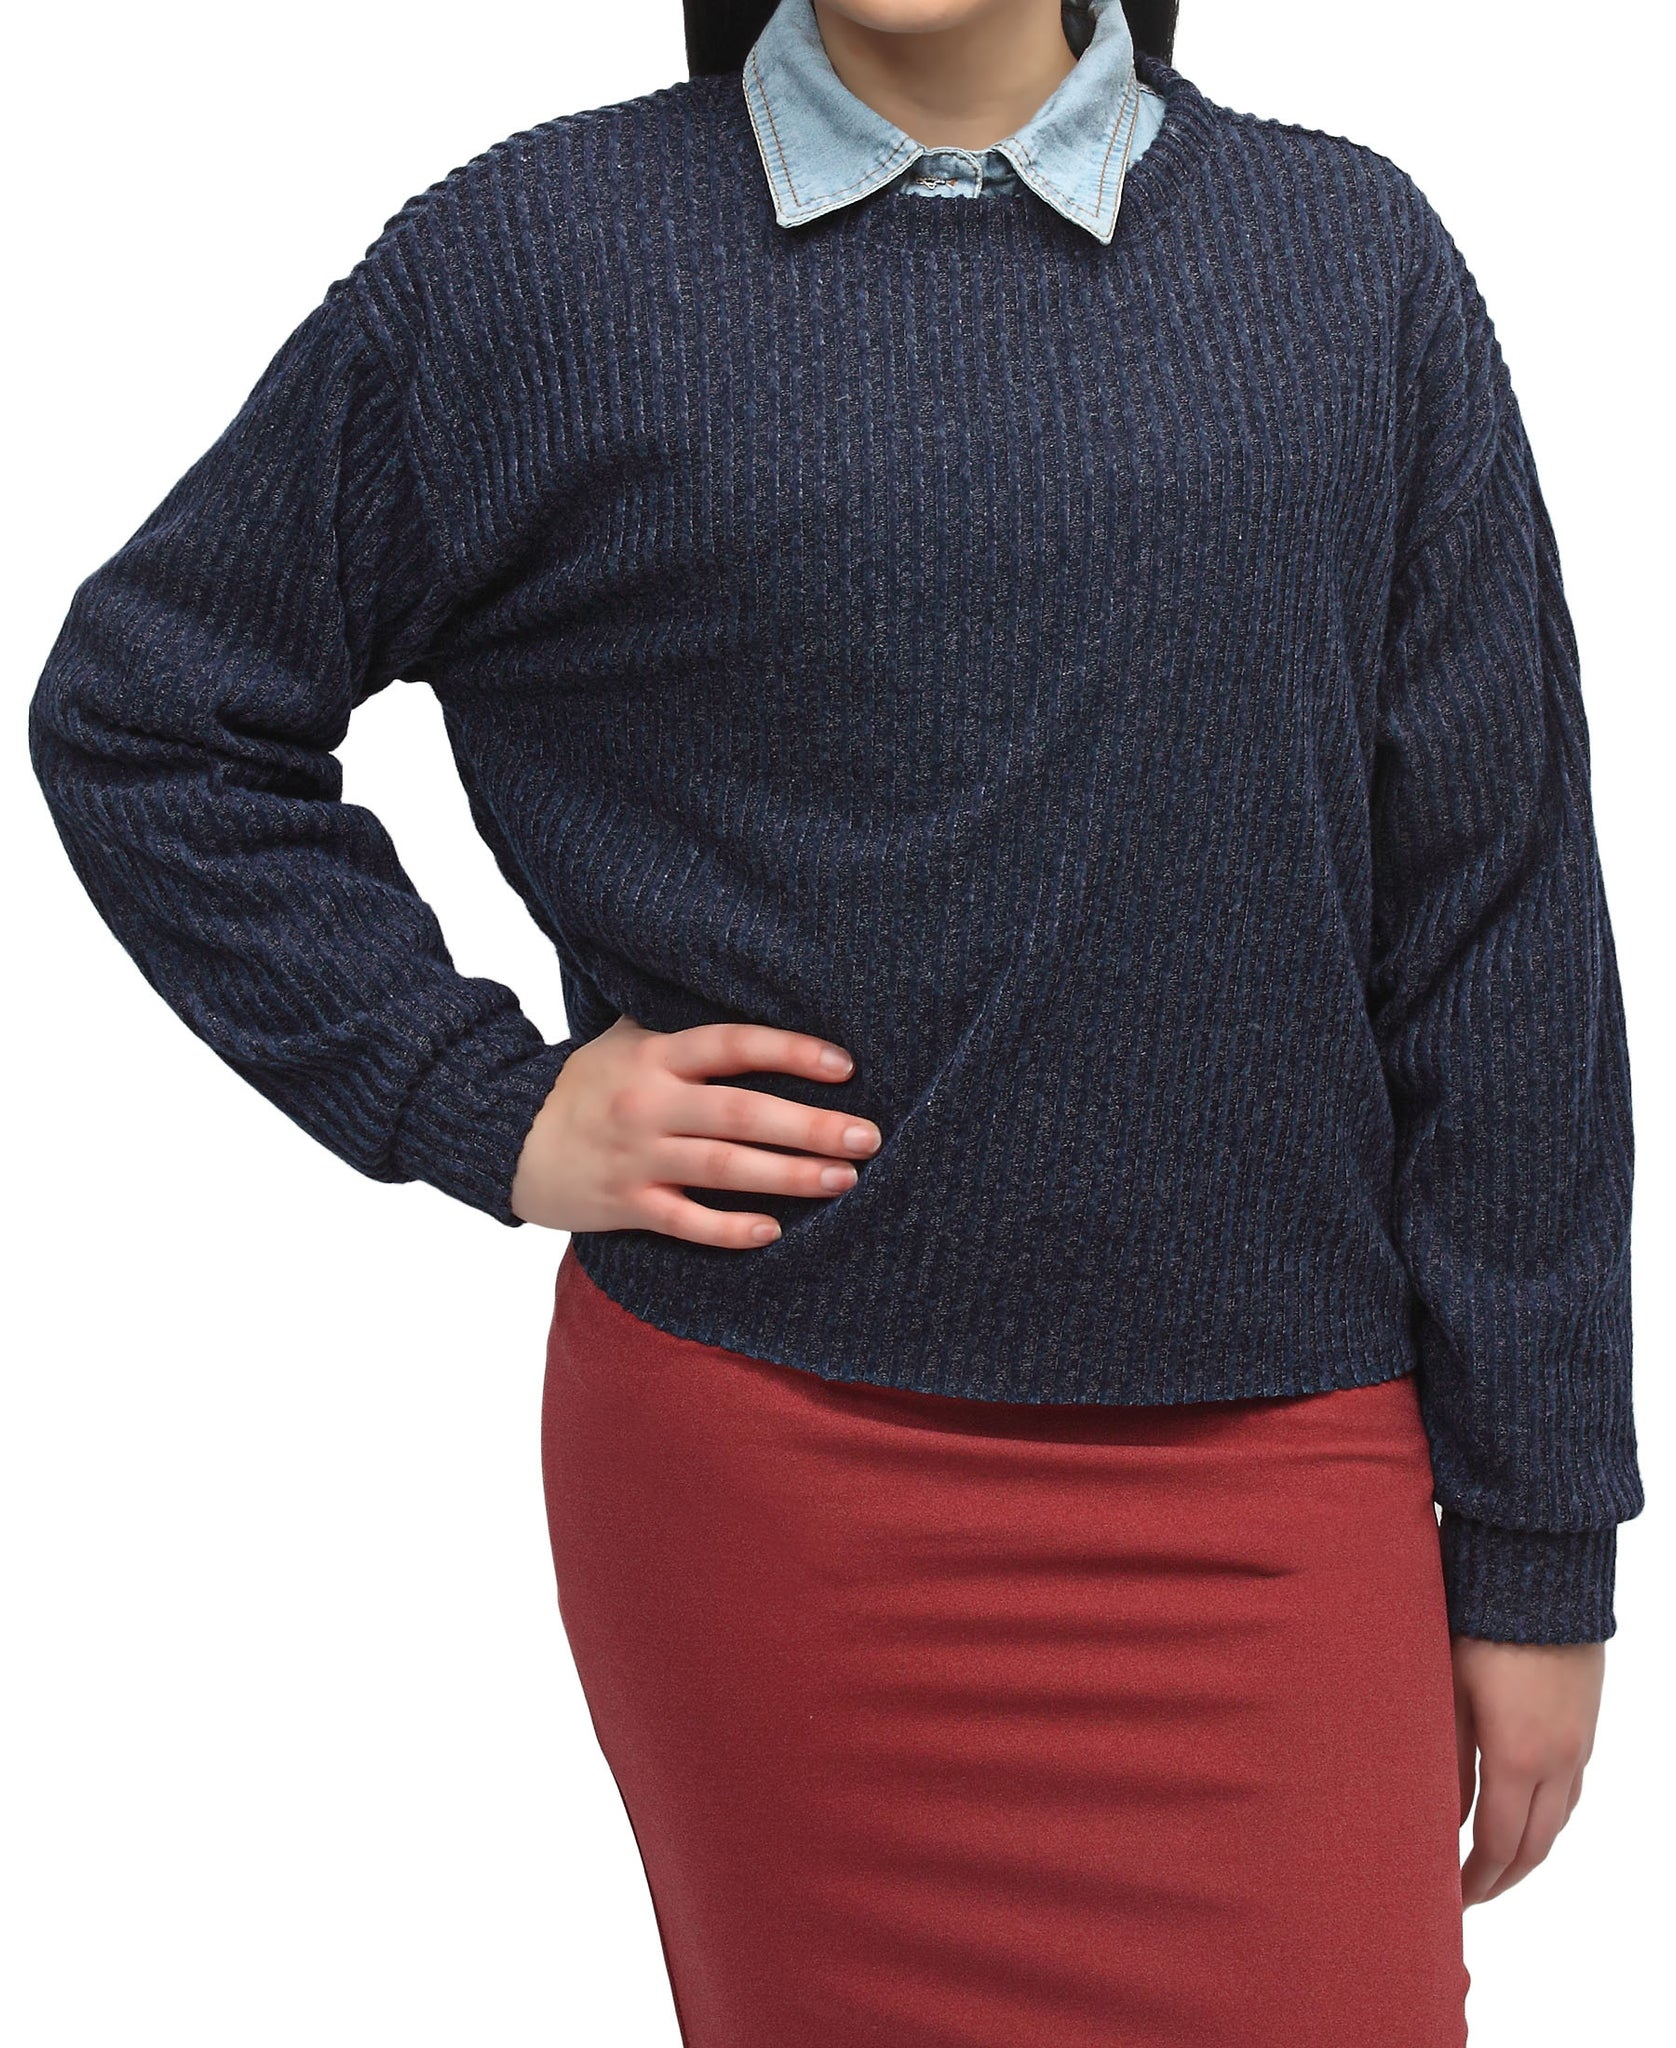 Ribbed Sweater - Navy